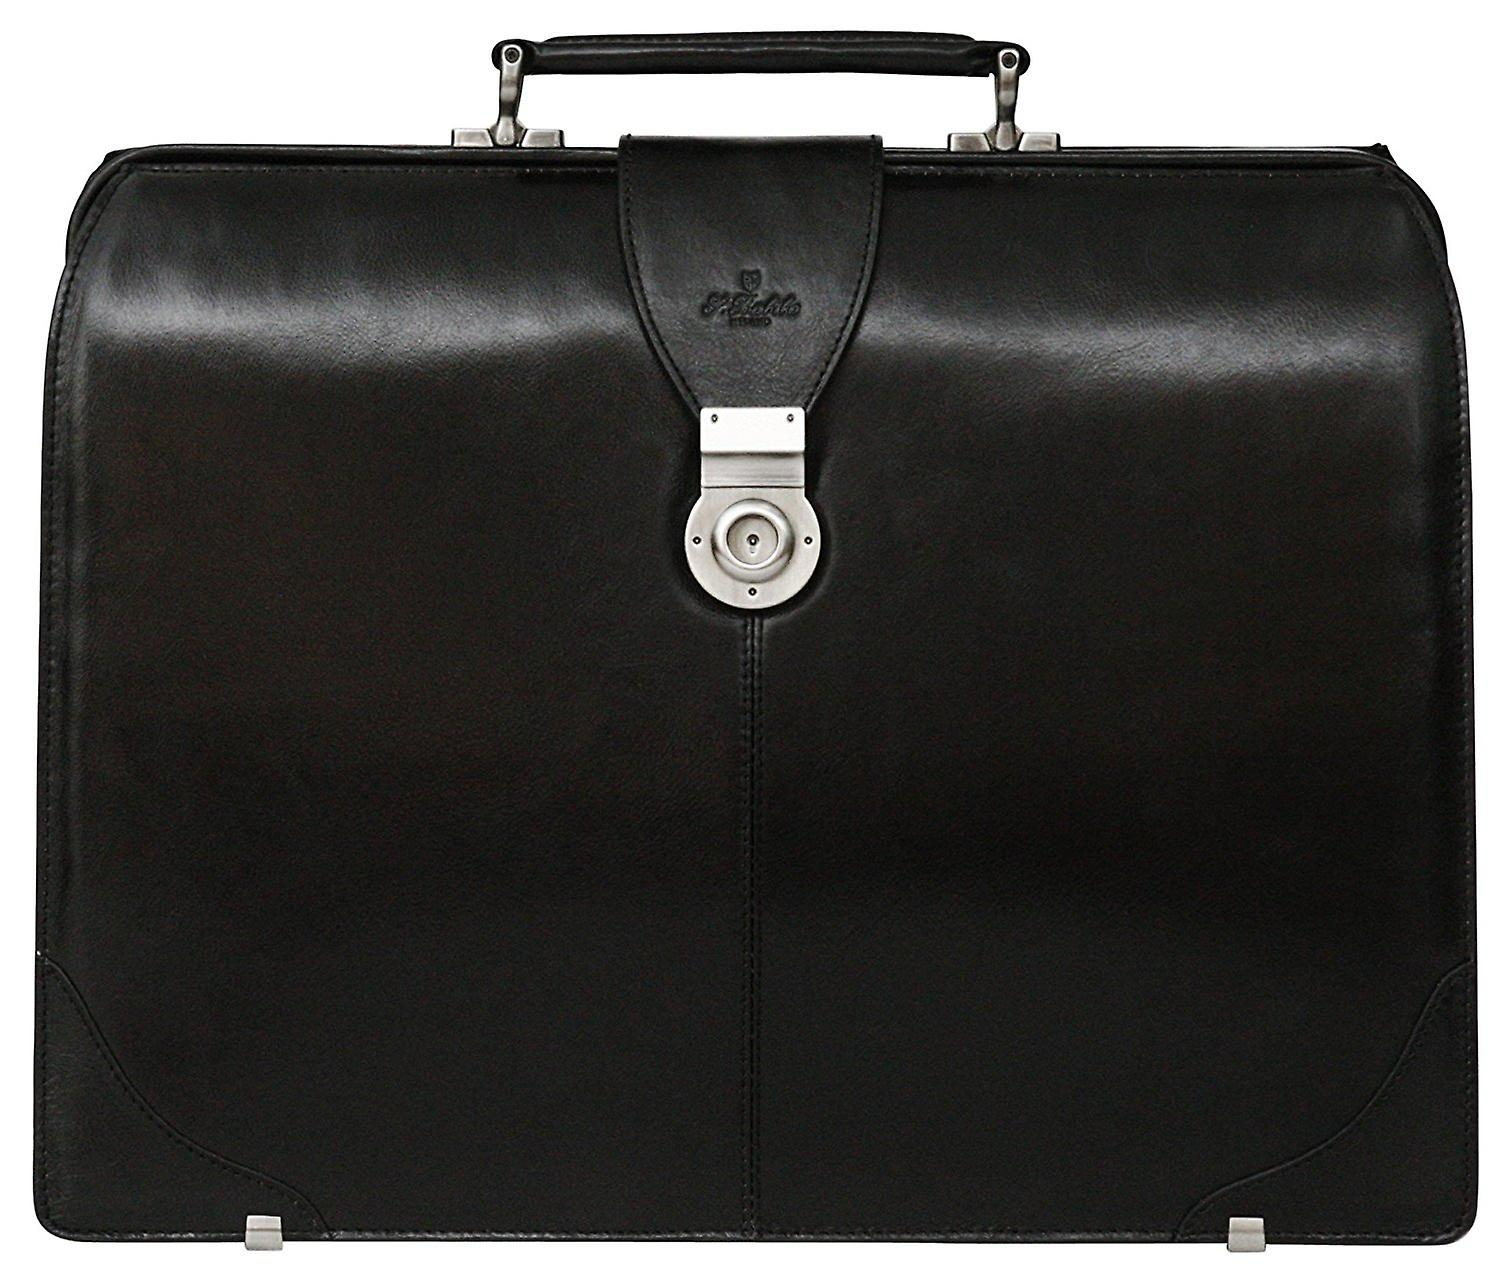 S Babila Leather Business Gladstone Doctors Briefcase Top Opening Lawyers Bag